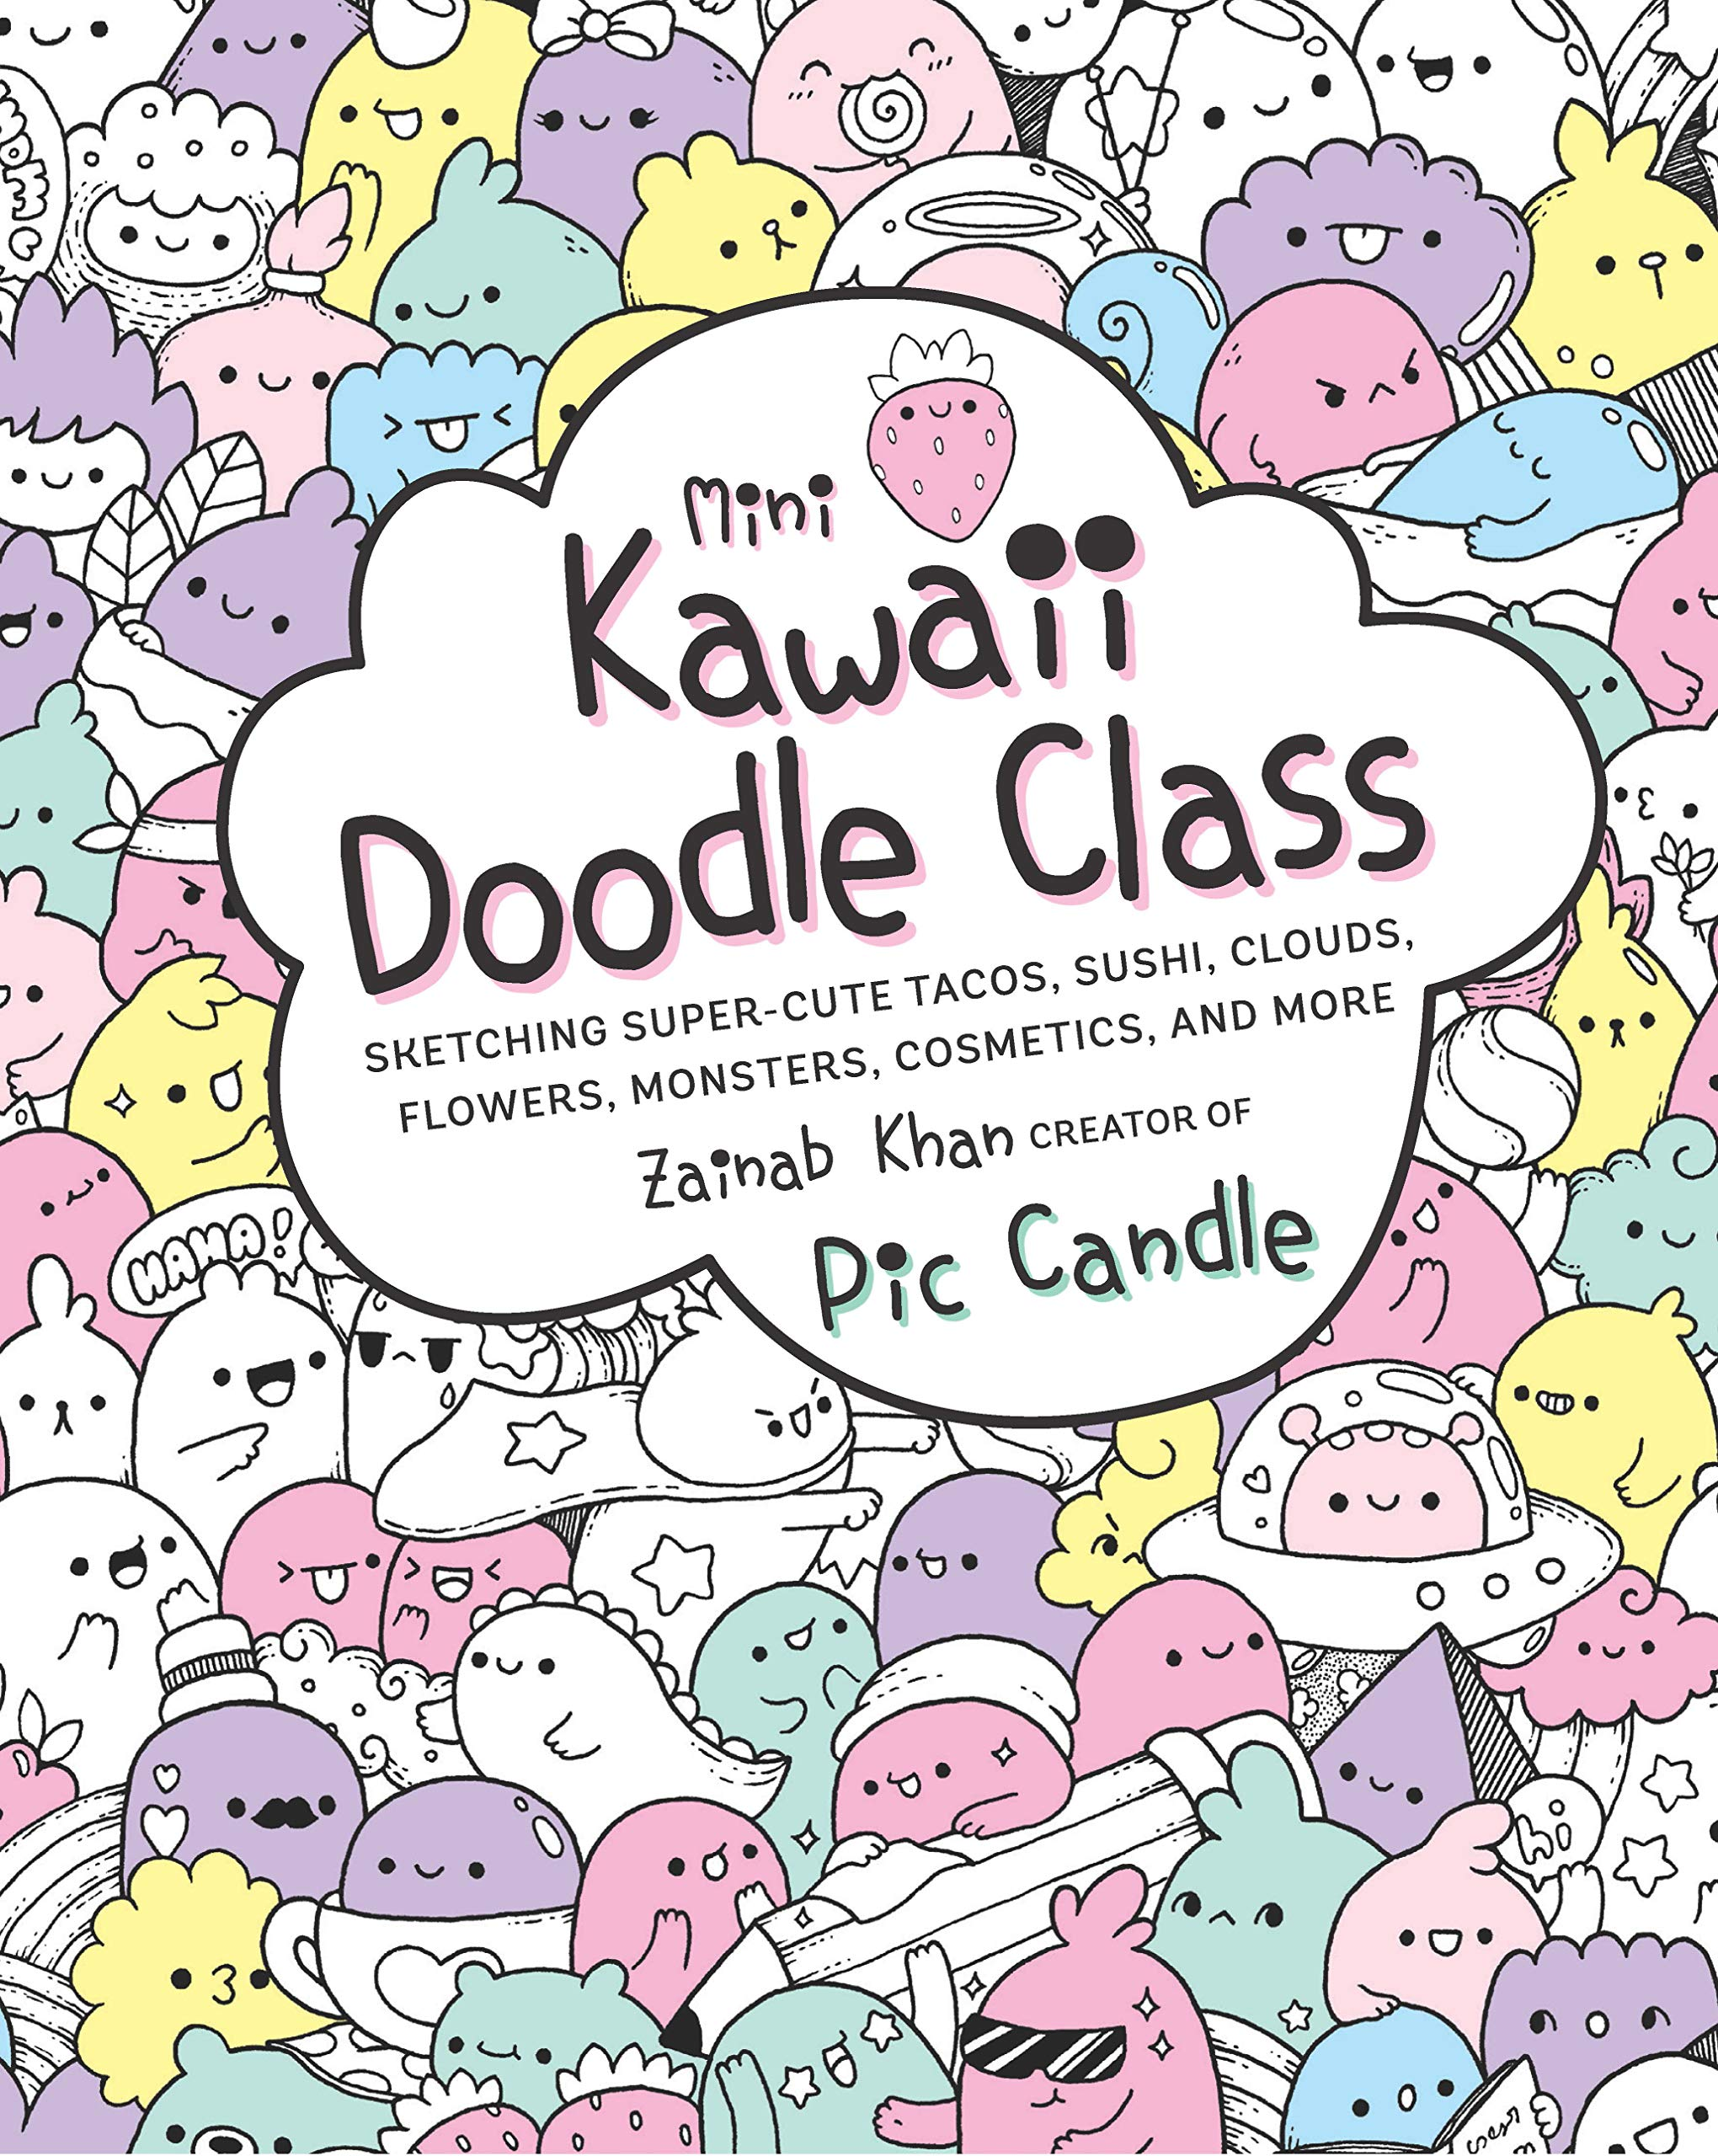 Download Mini Kawaii Doodle Class: Sketching Super-Cute Tacos, Sushi Clouds, Flowers, Monsters, Cosmetics, and More pdf